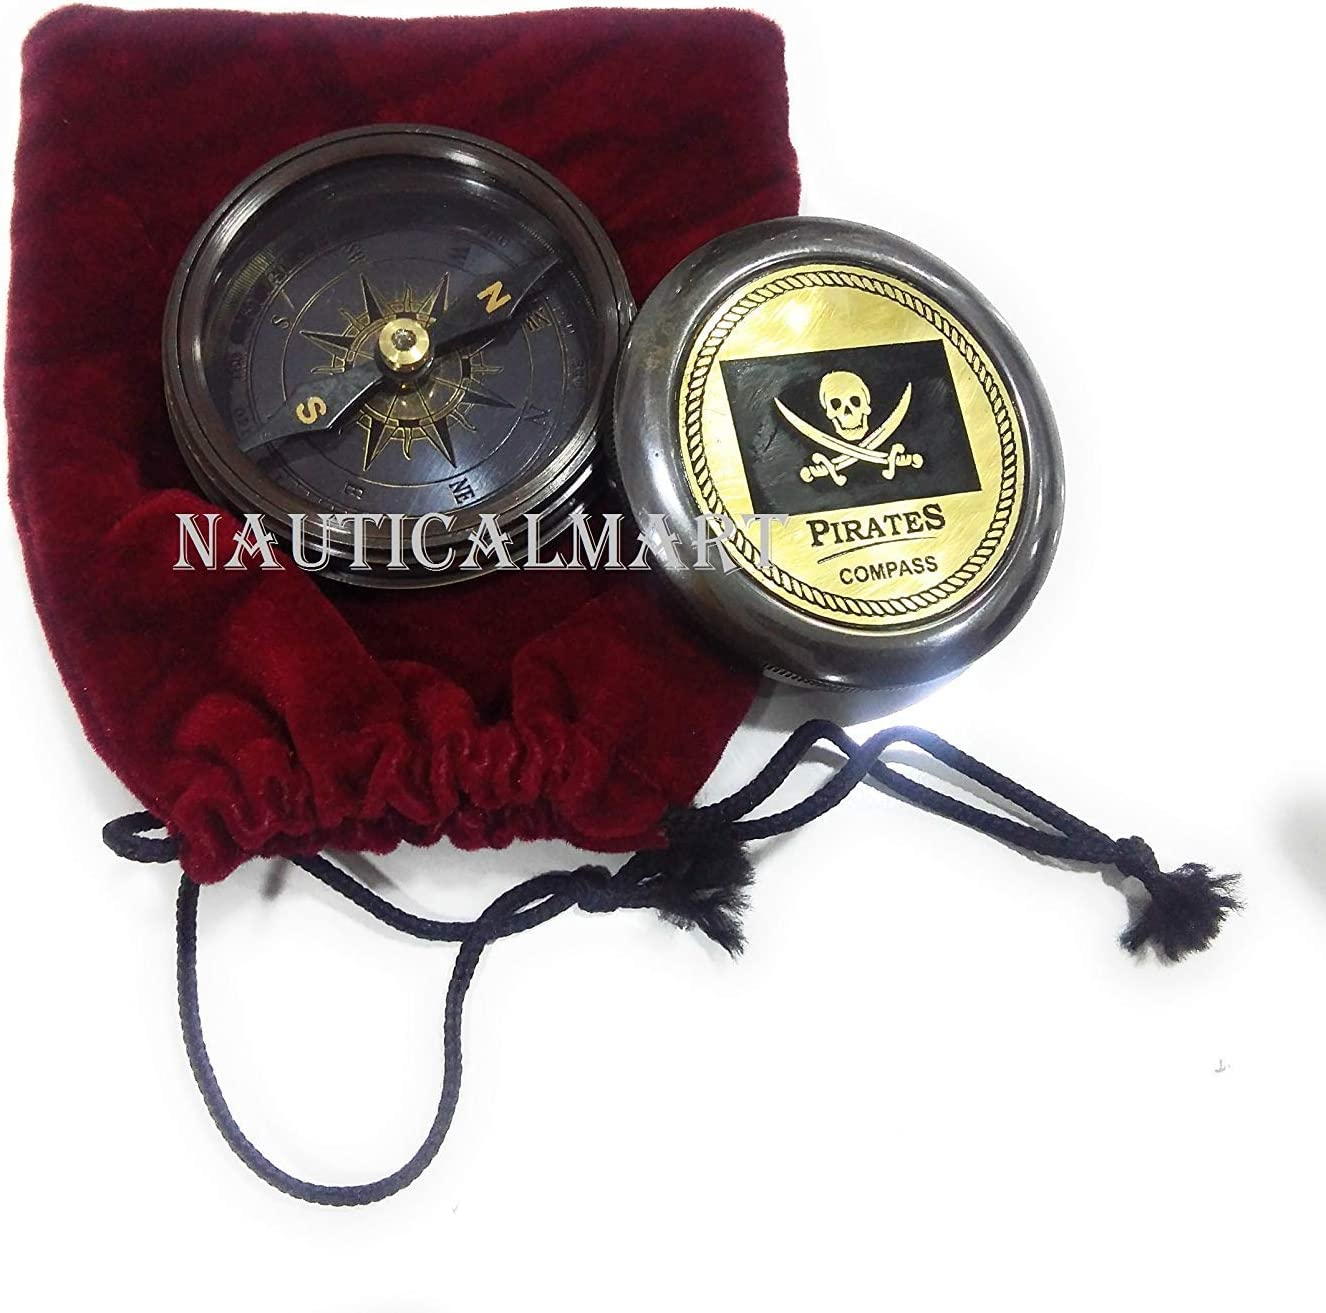 NauticalMart Pirated Compass Brass Pocket for Camping Gift Sale special price Trav 5 ☆ popular